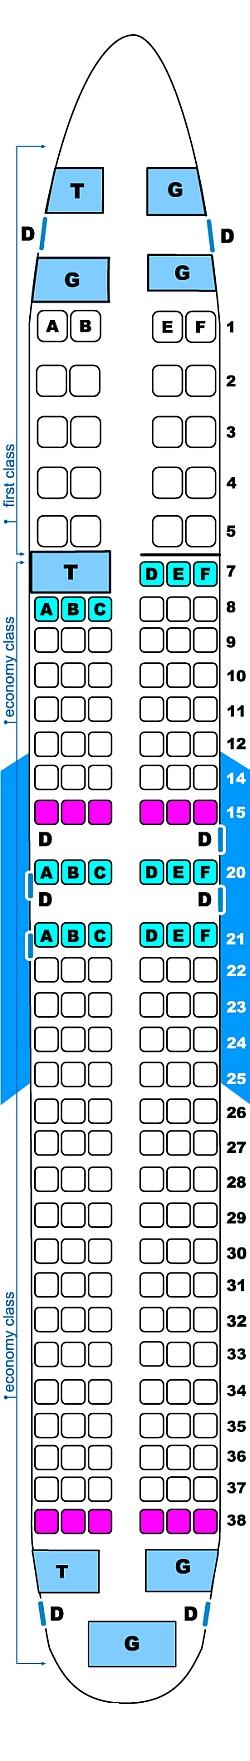 Seat map for Continental Airlines Boeing B737 900 ER